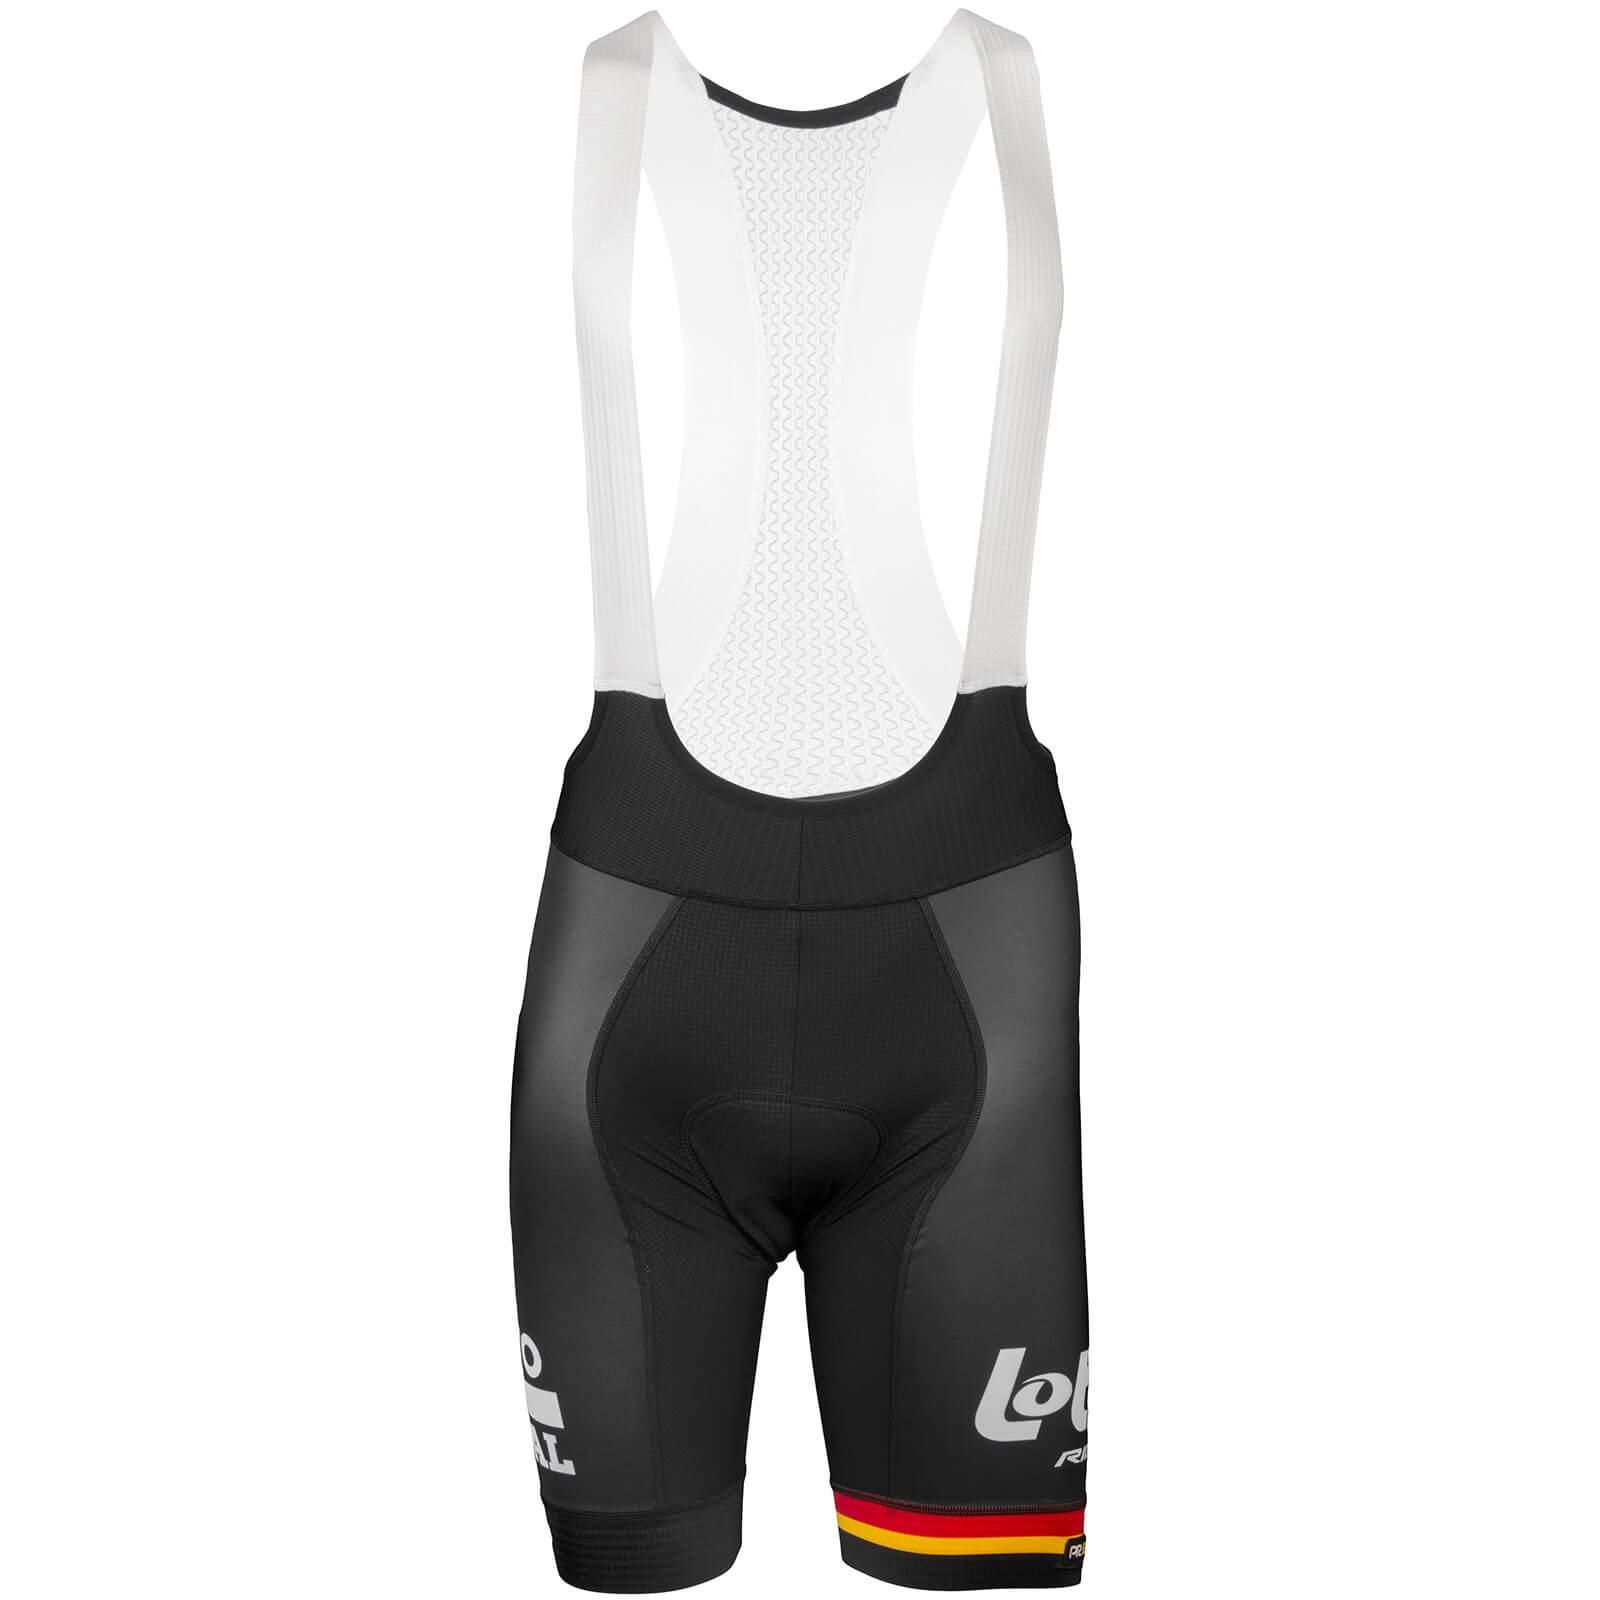 Lotto Soudal Bib Shorts - Black  da33aeadc